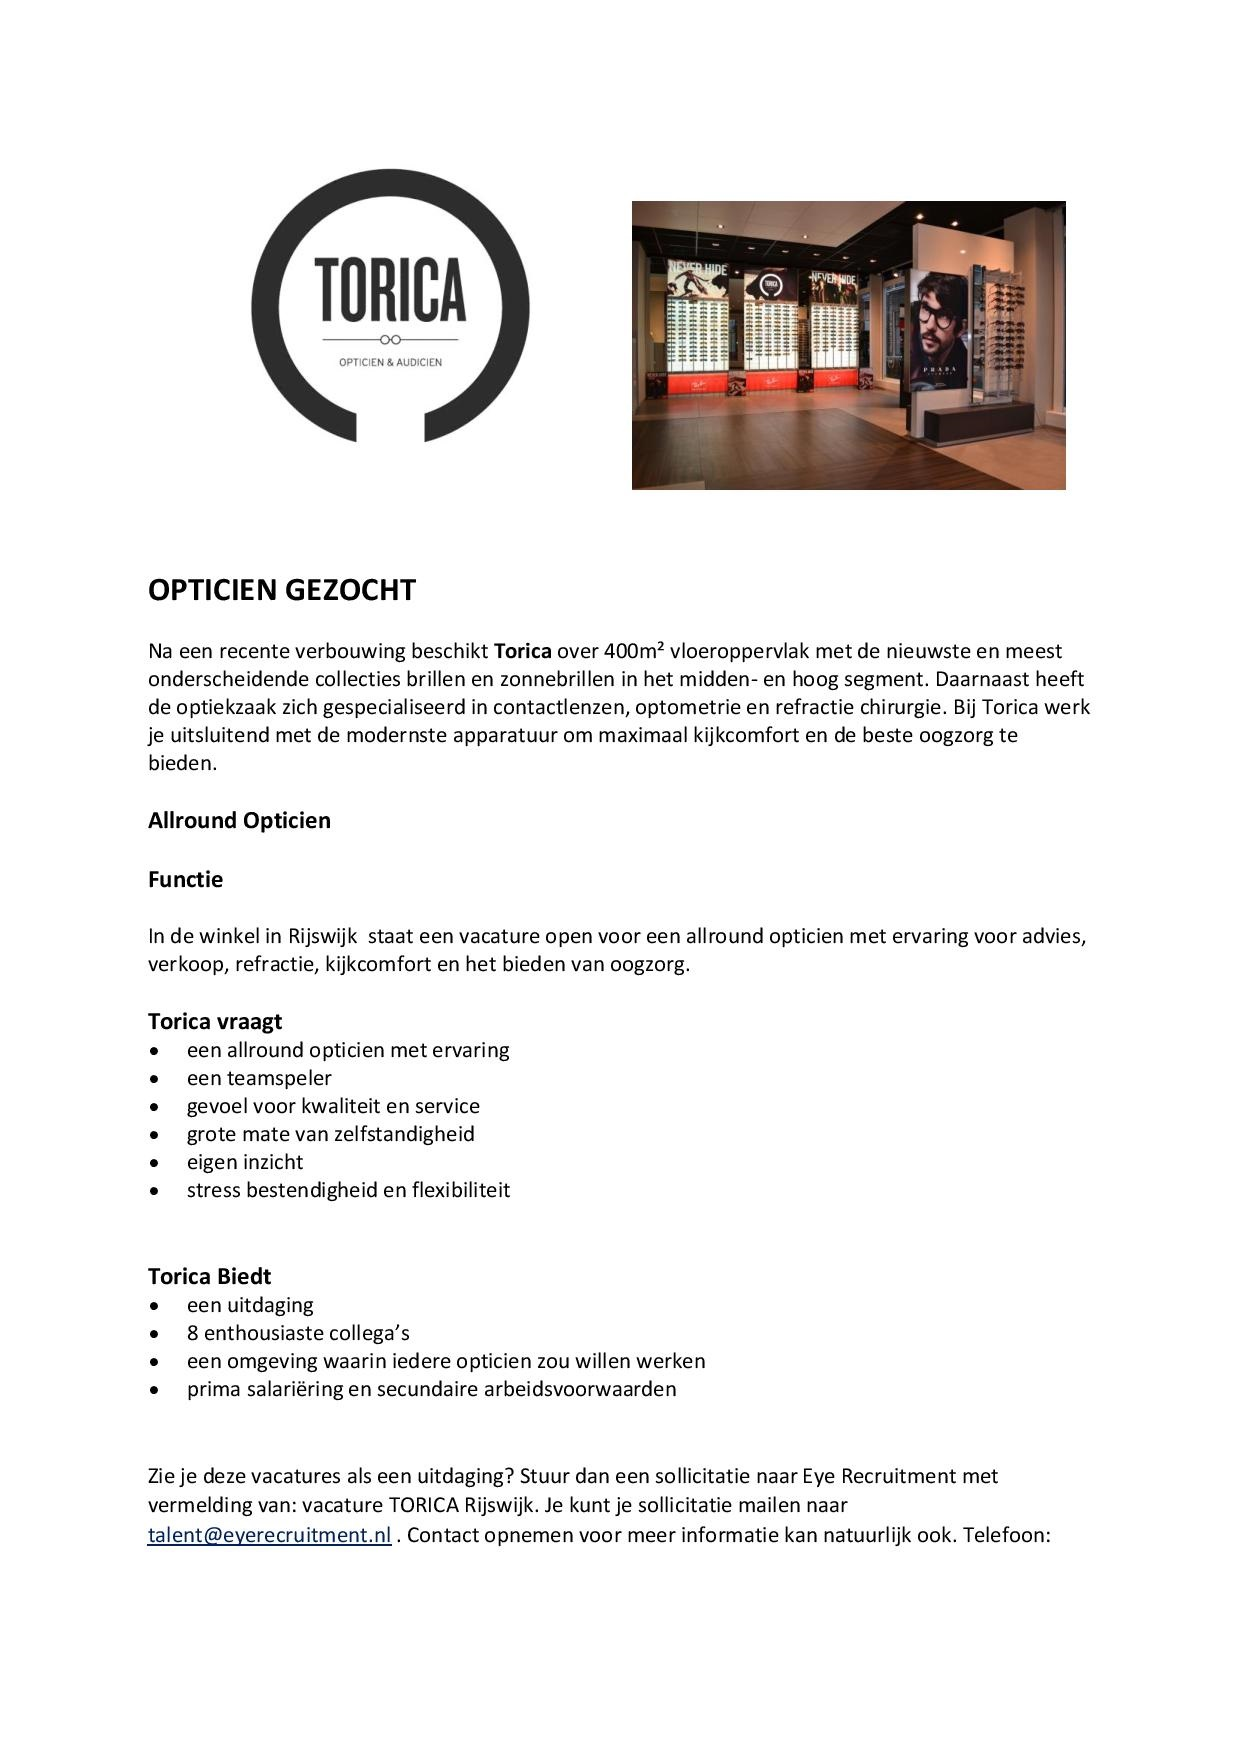 Vacature torica OPTICIEN-page-001